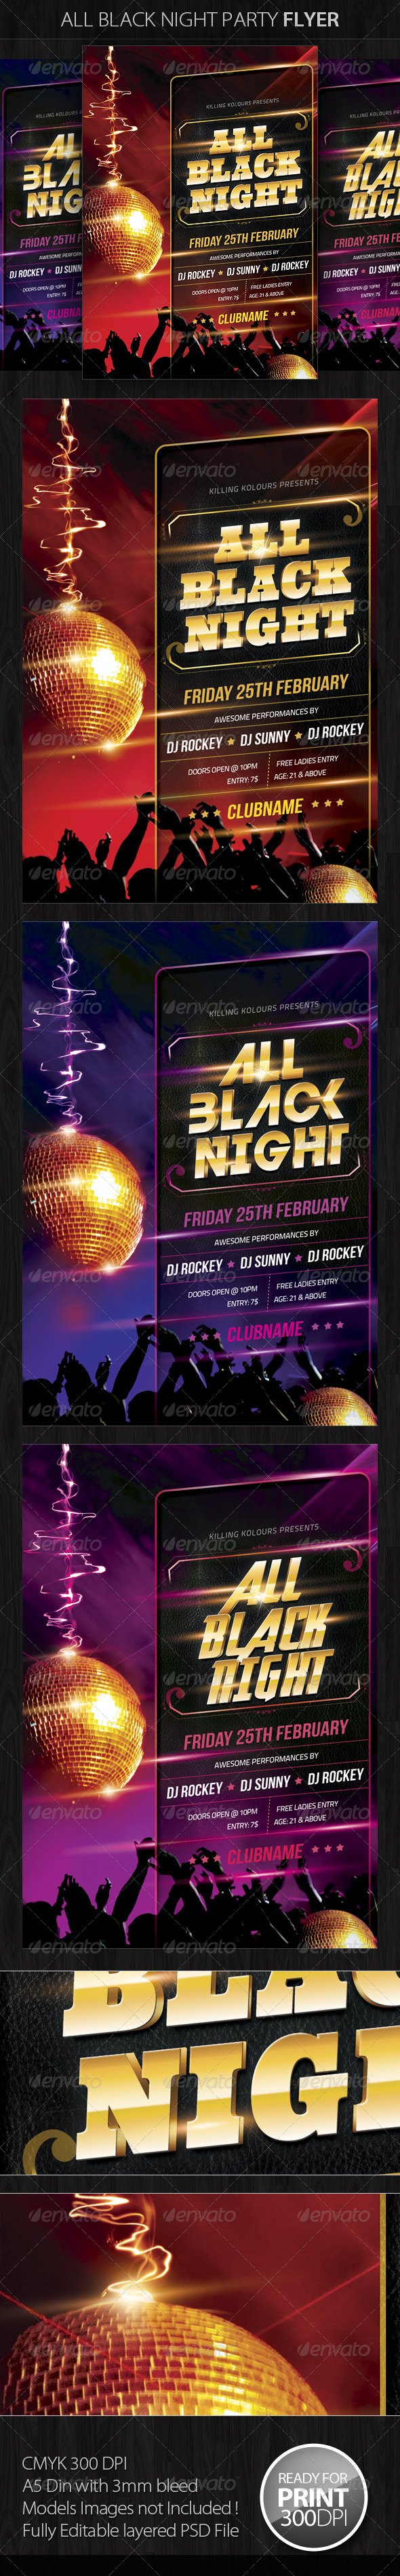 All Black Night Party Flyer - Clubs &amp; Parties Events